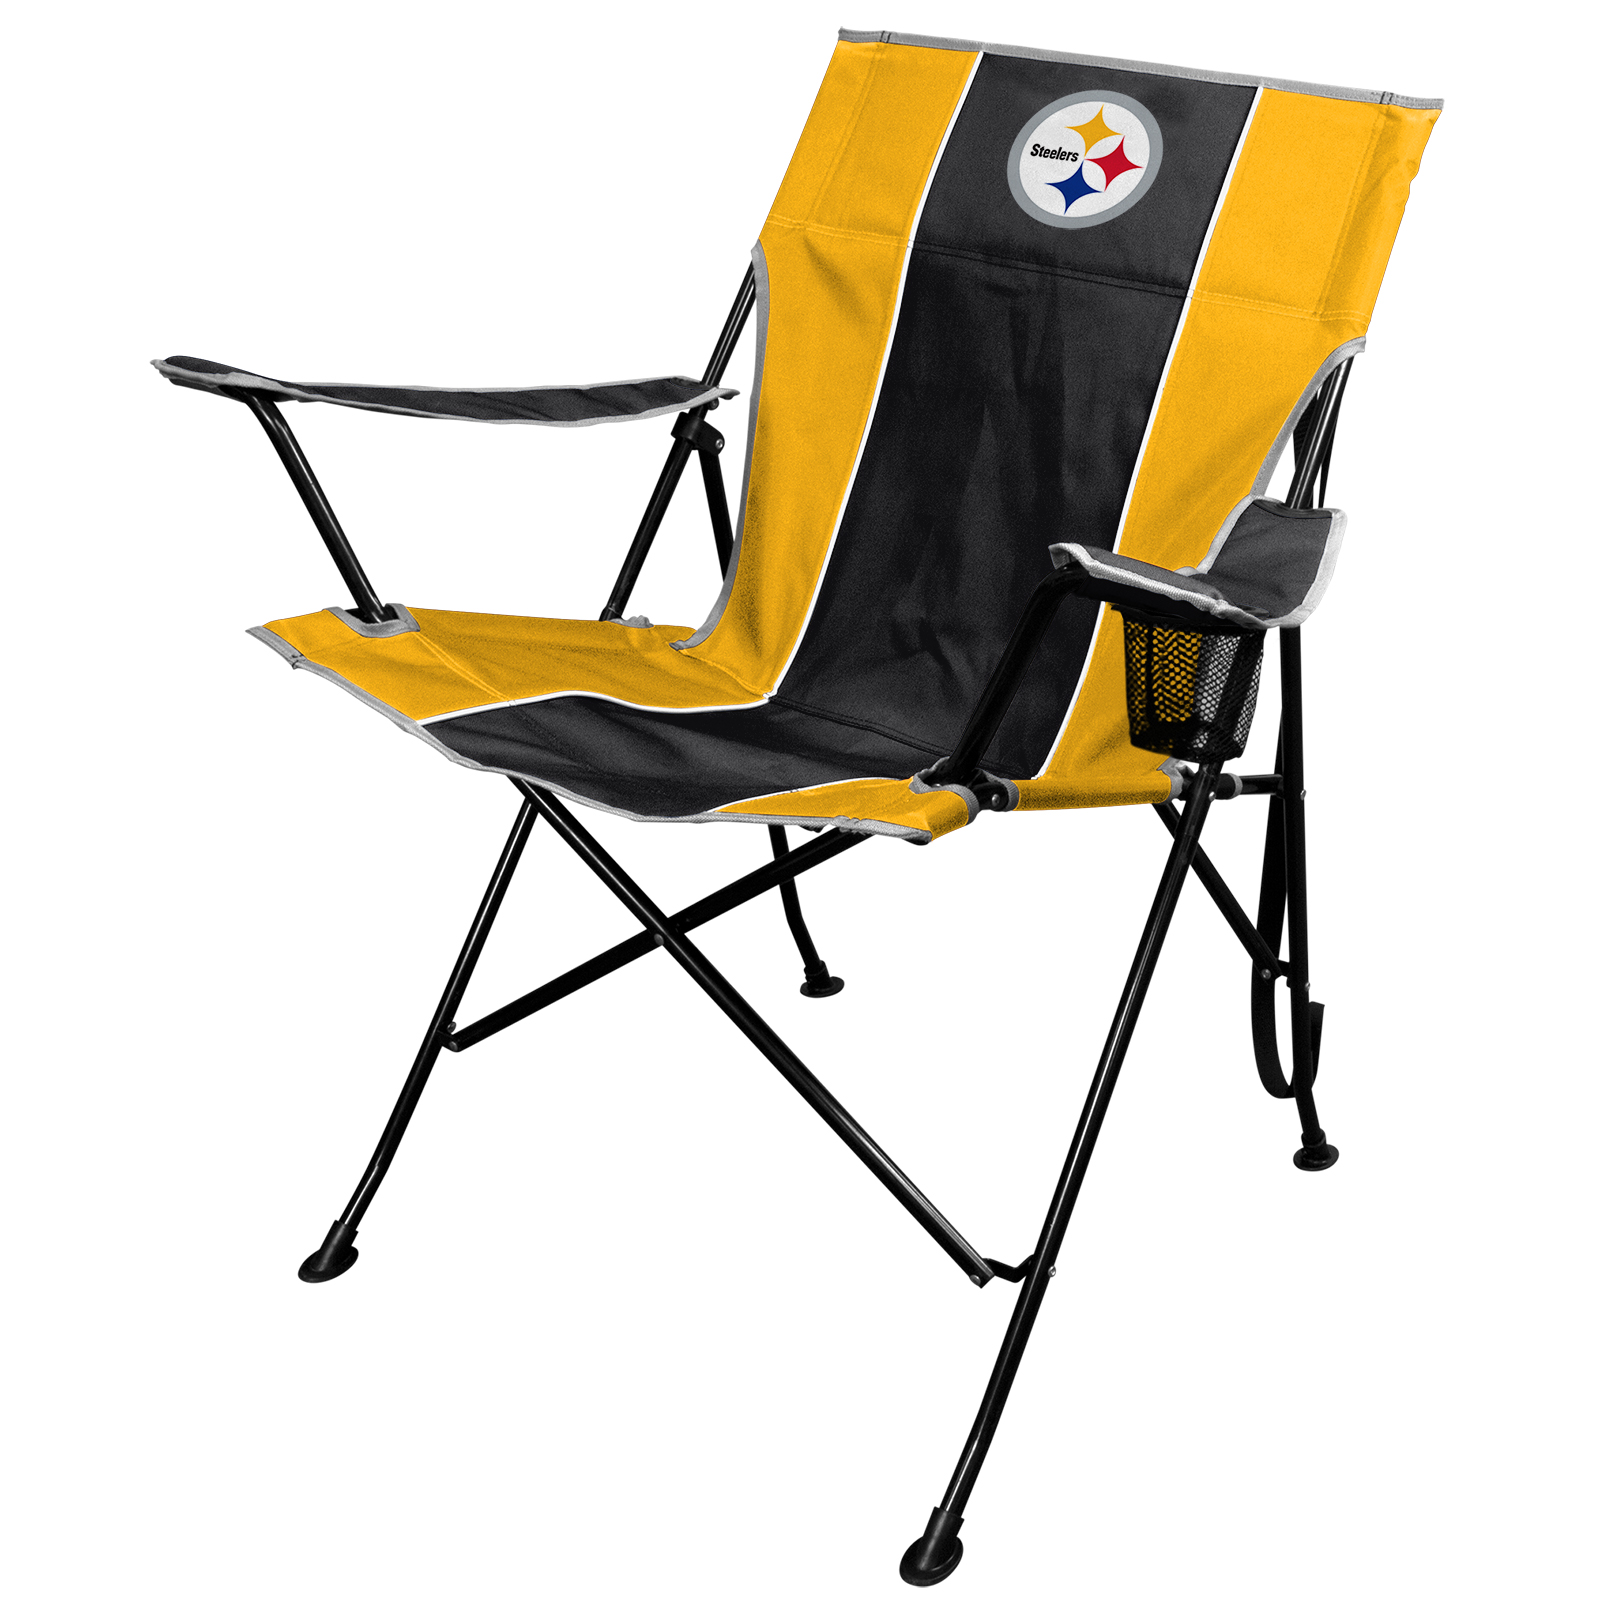 Pittsburgh Steelers Chair Tlg8 Chair Nfl Steelers Fitness And Sports Fan Shop